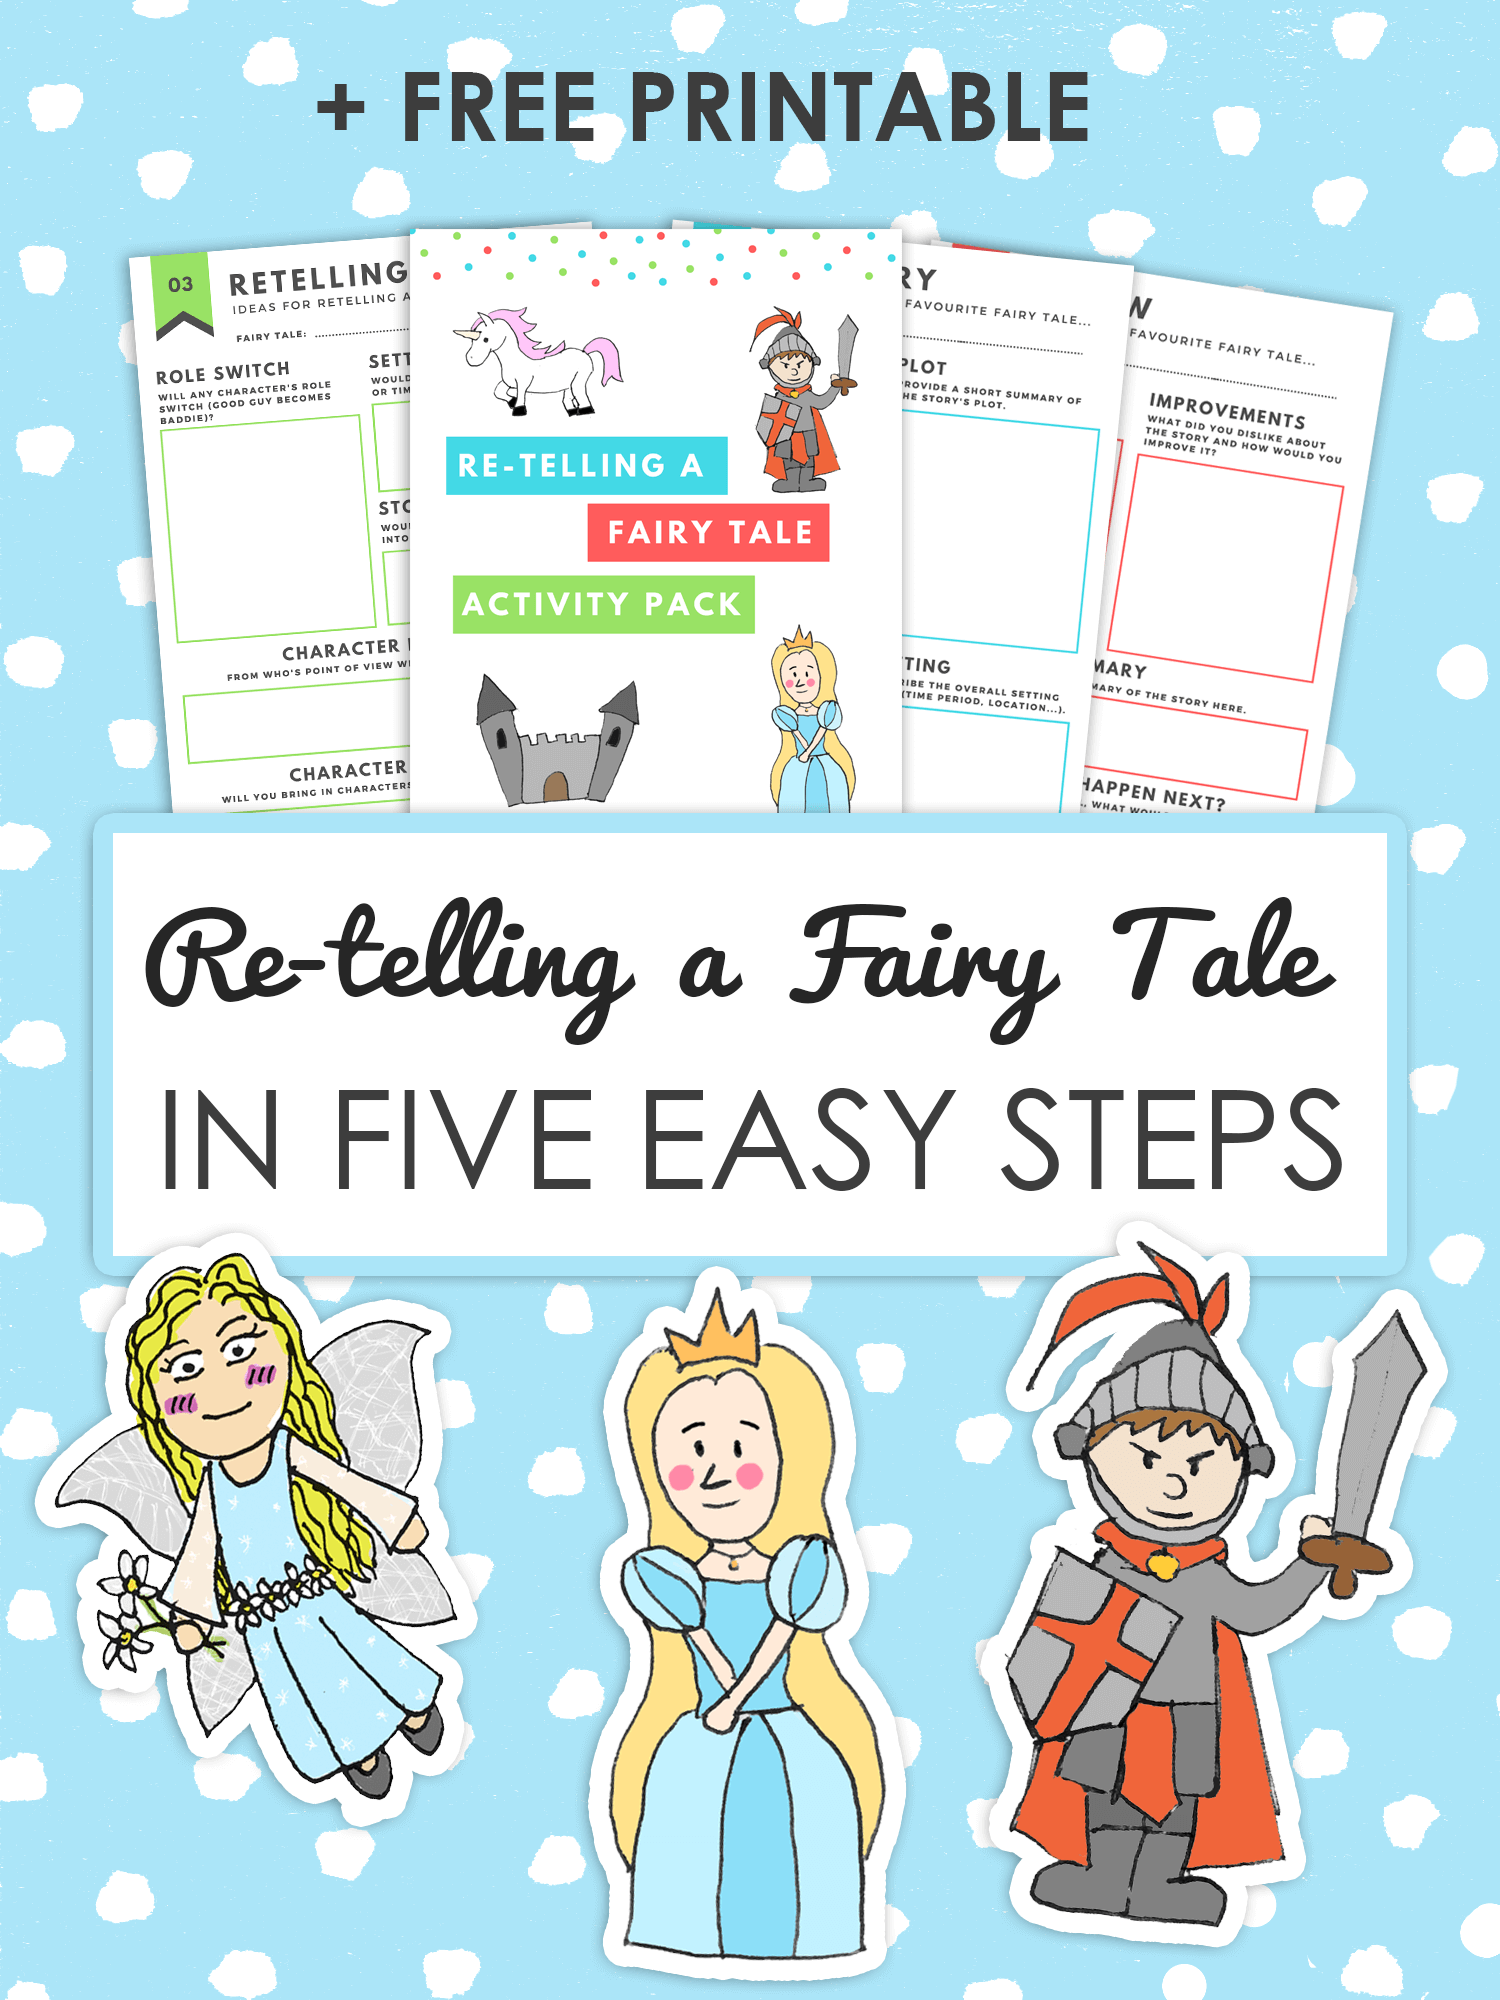 How To Retell A Fairy Tale In 5 Easy Steps